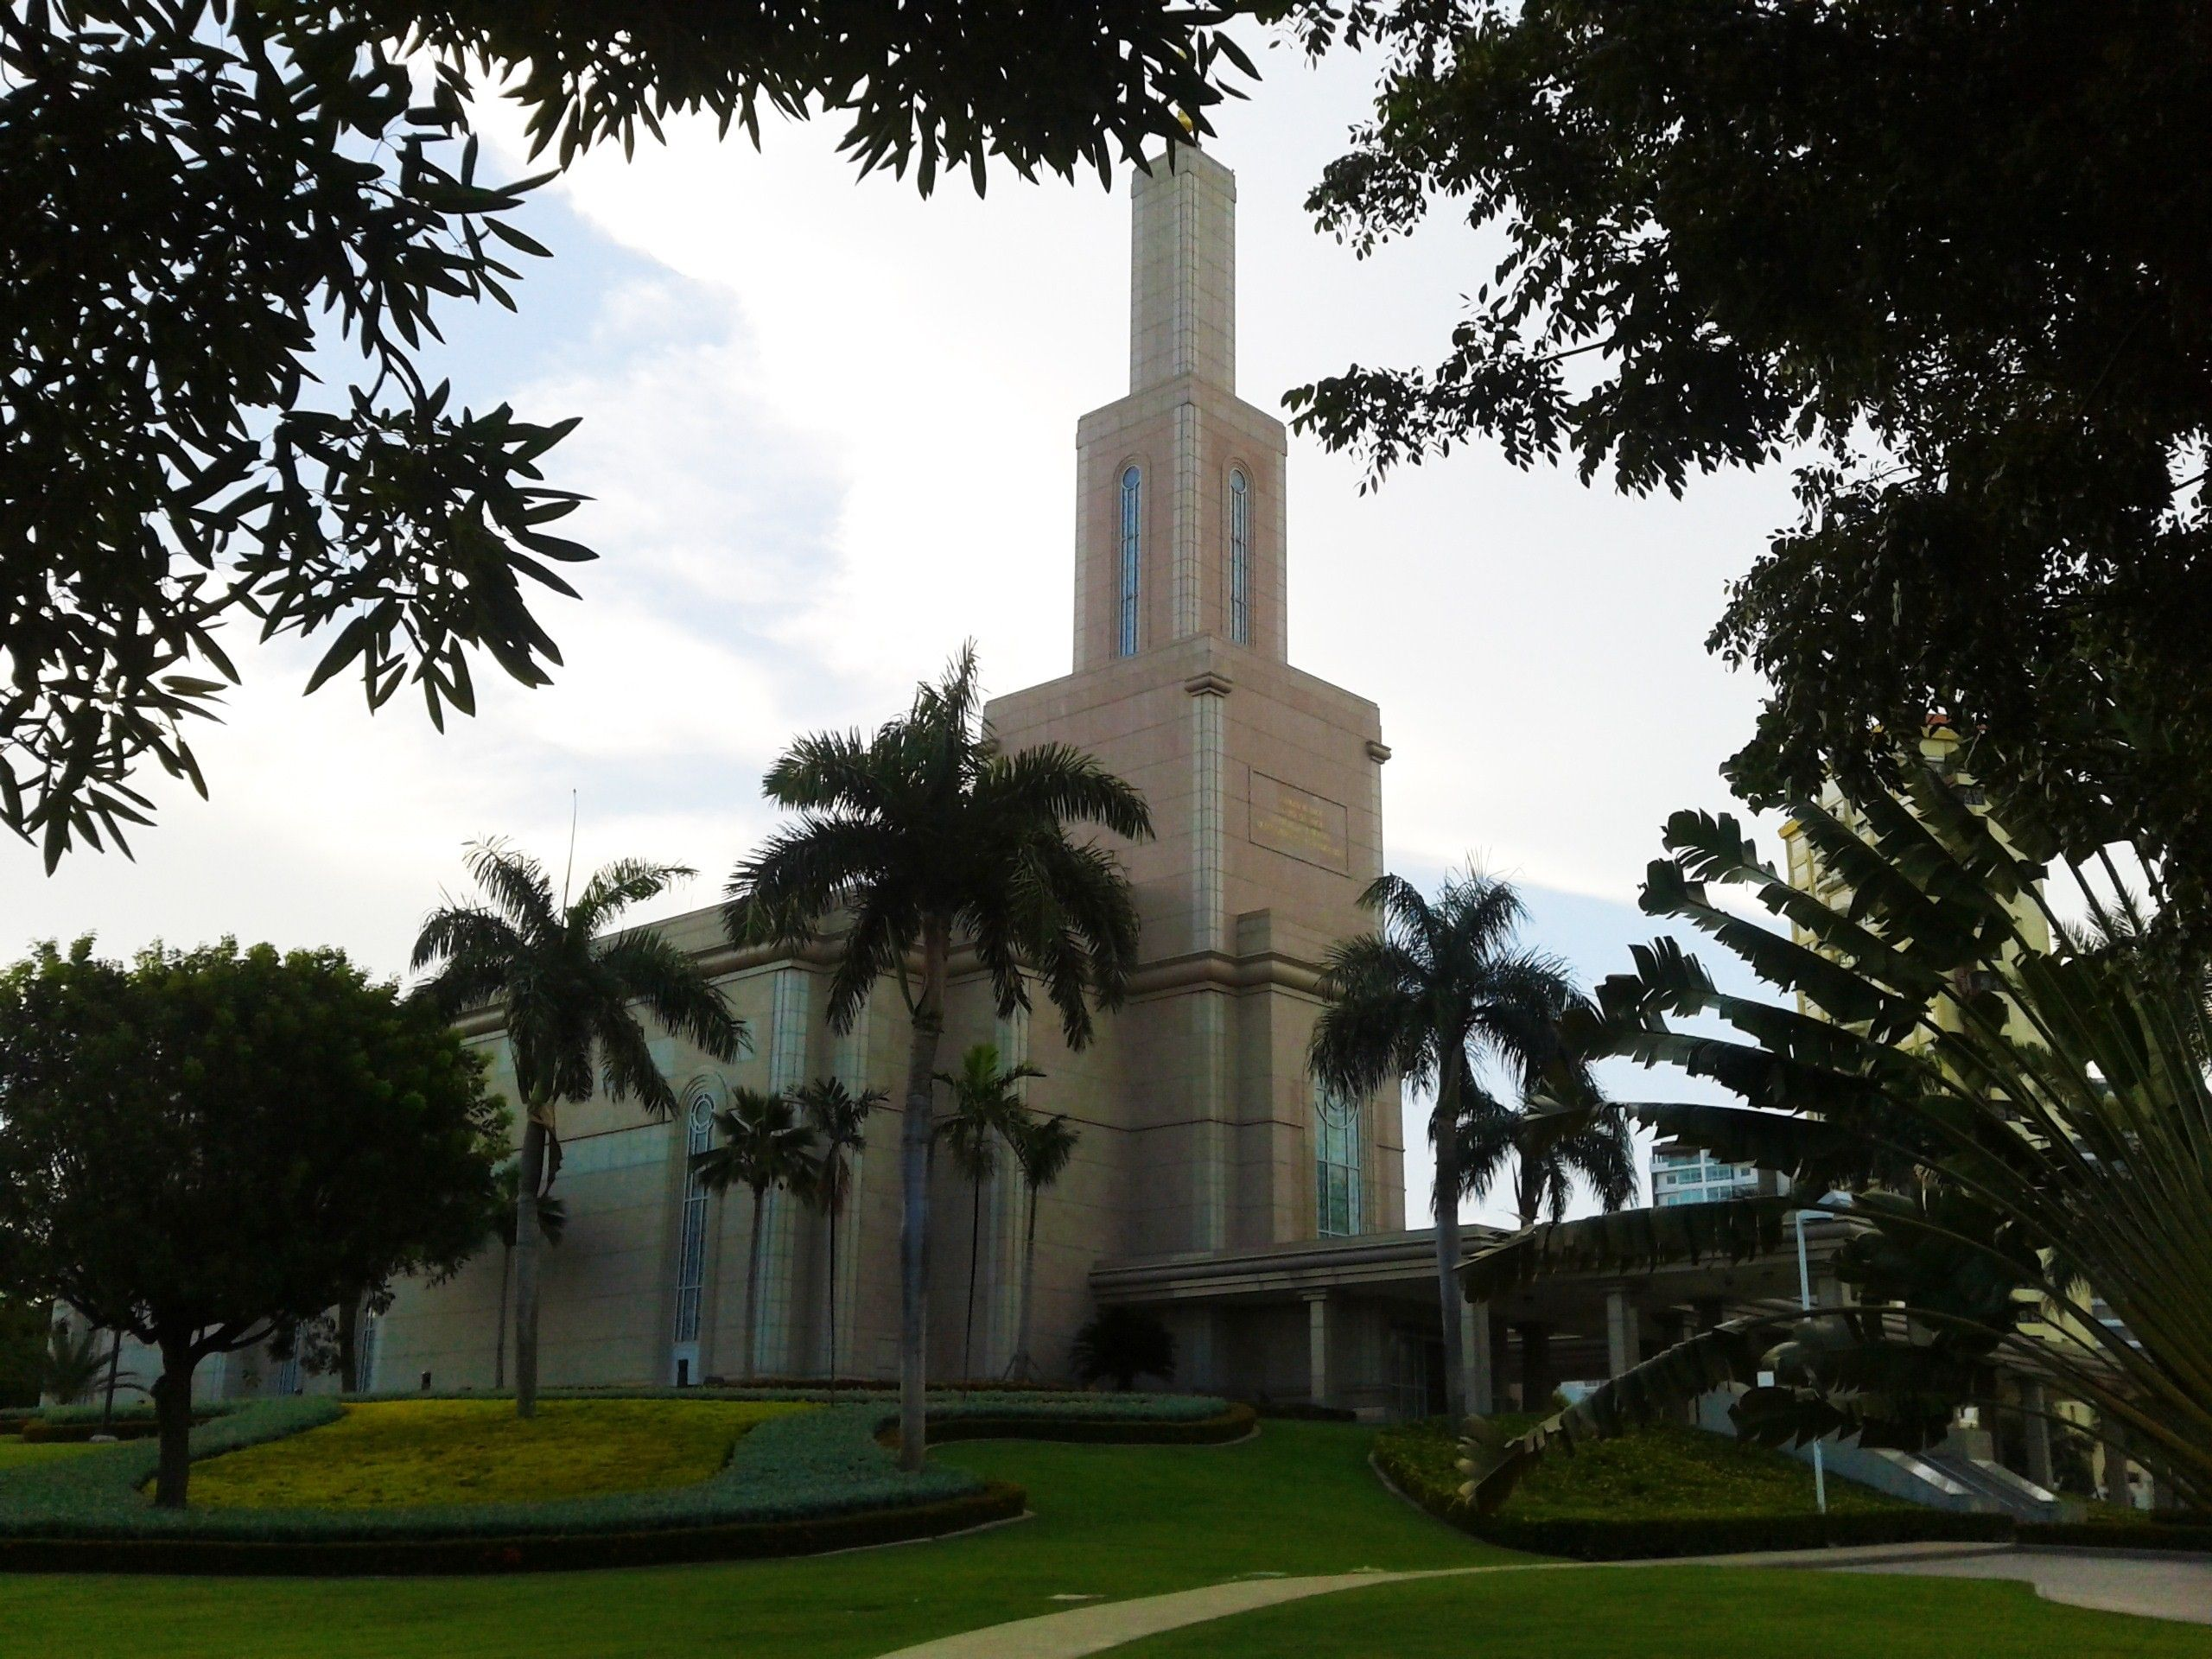 The Santo Domingo Dominican Republic Temple side view, including the scenery and entrance.